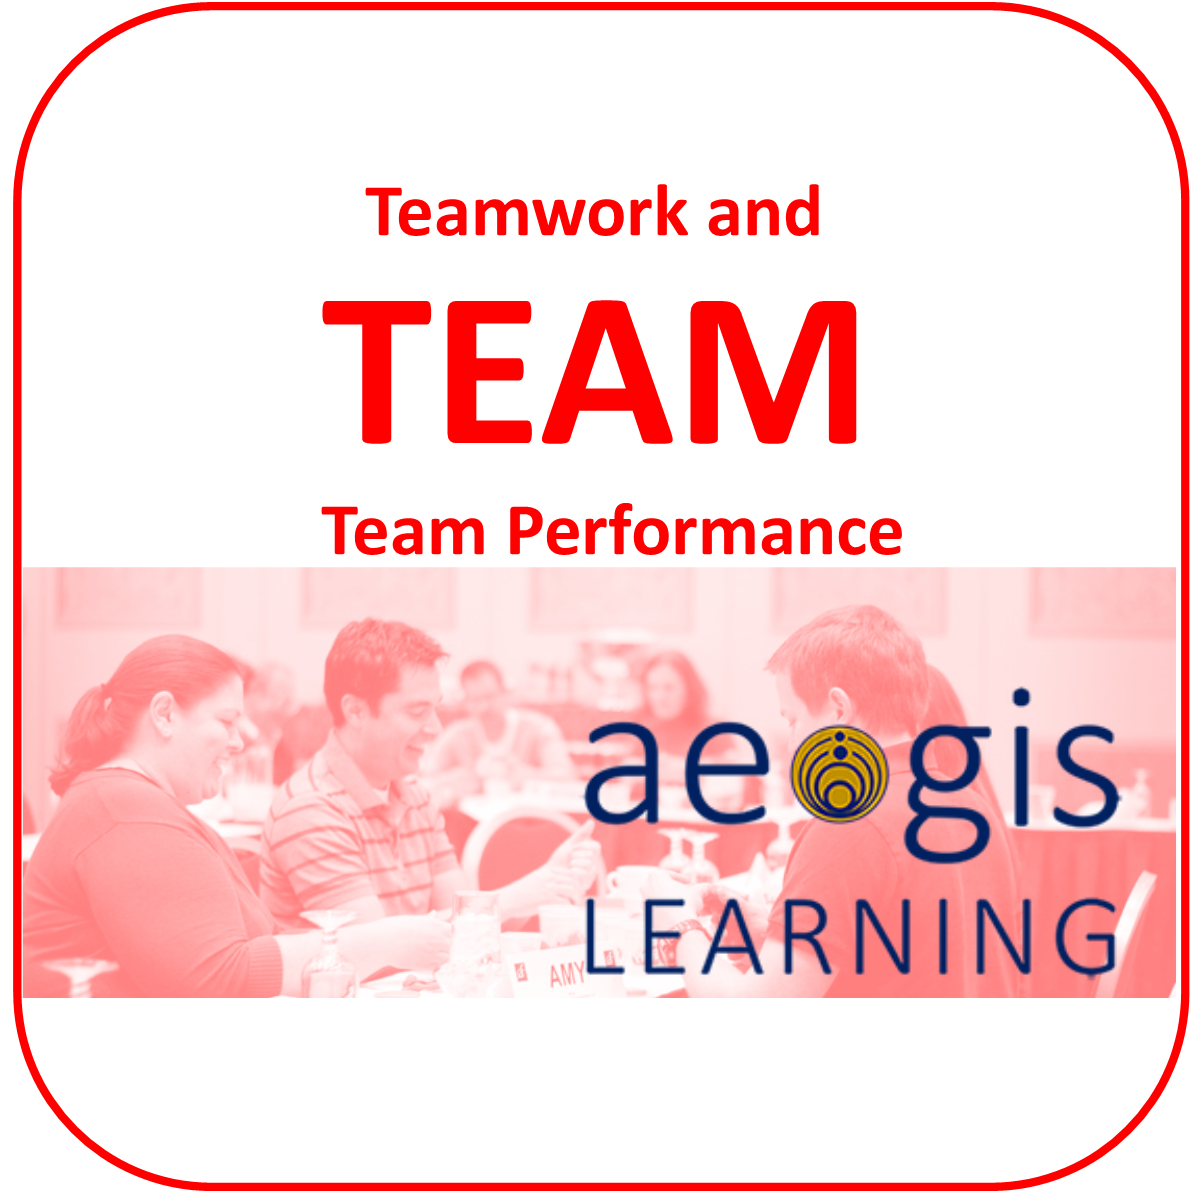 Teamwork and Team Performance from Aegis Learning